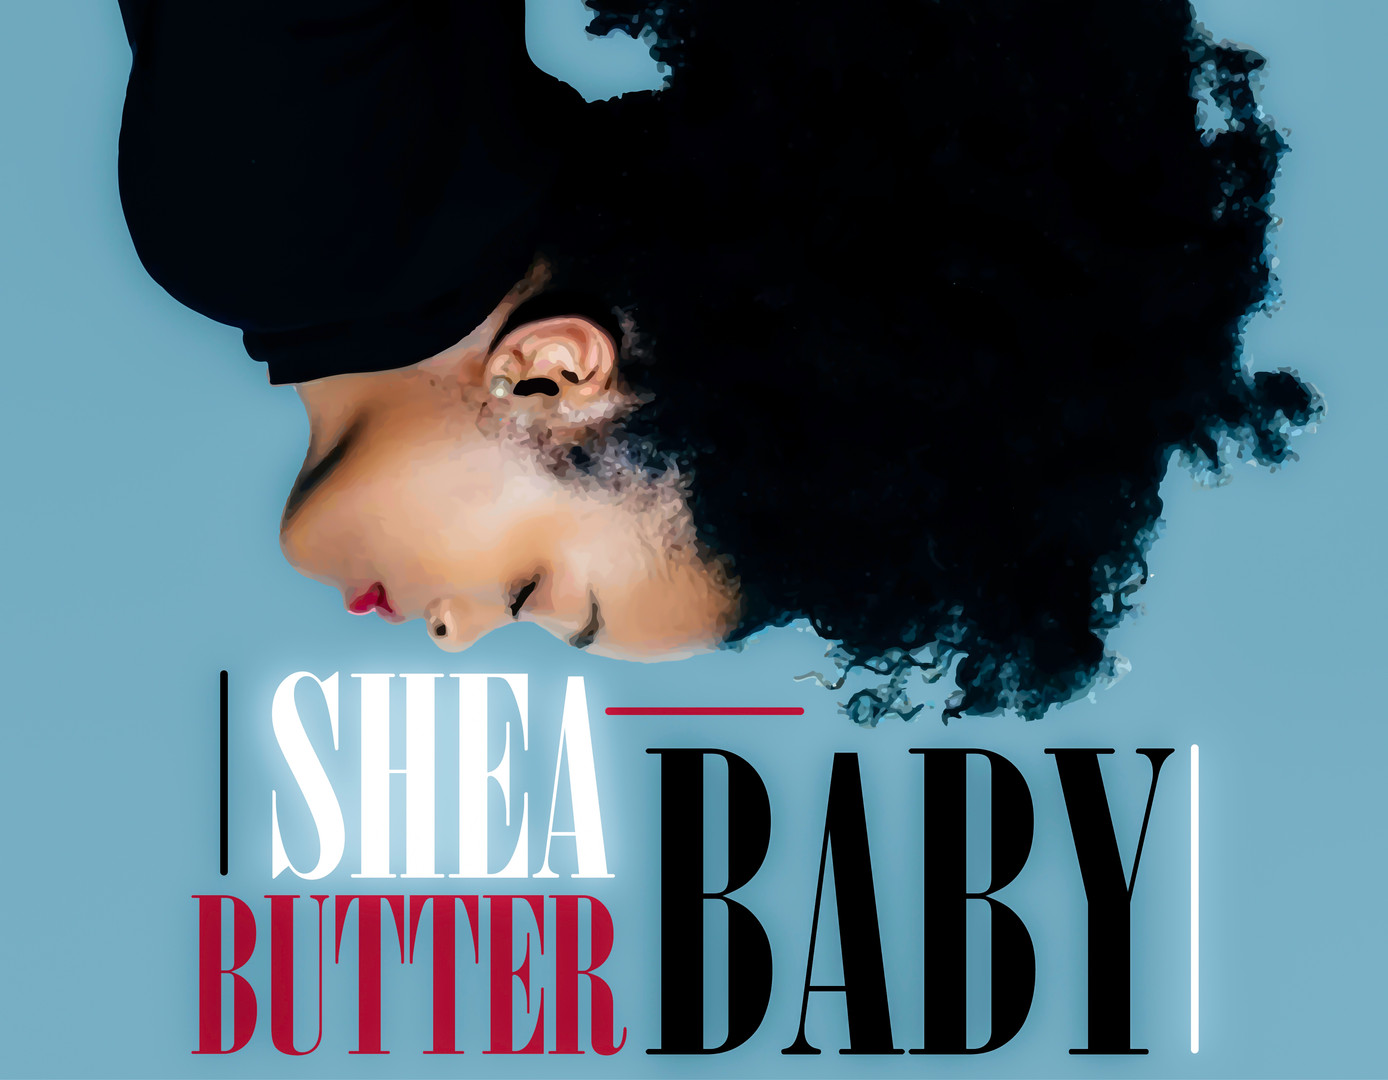 Shae Butter Baby